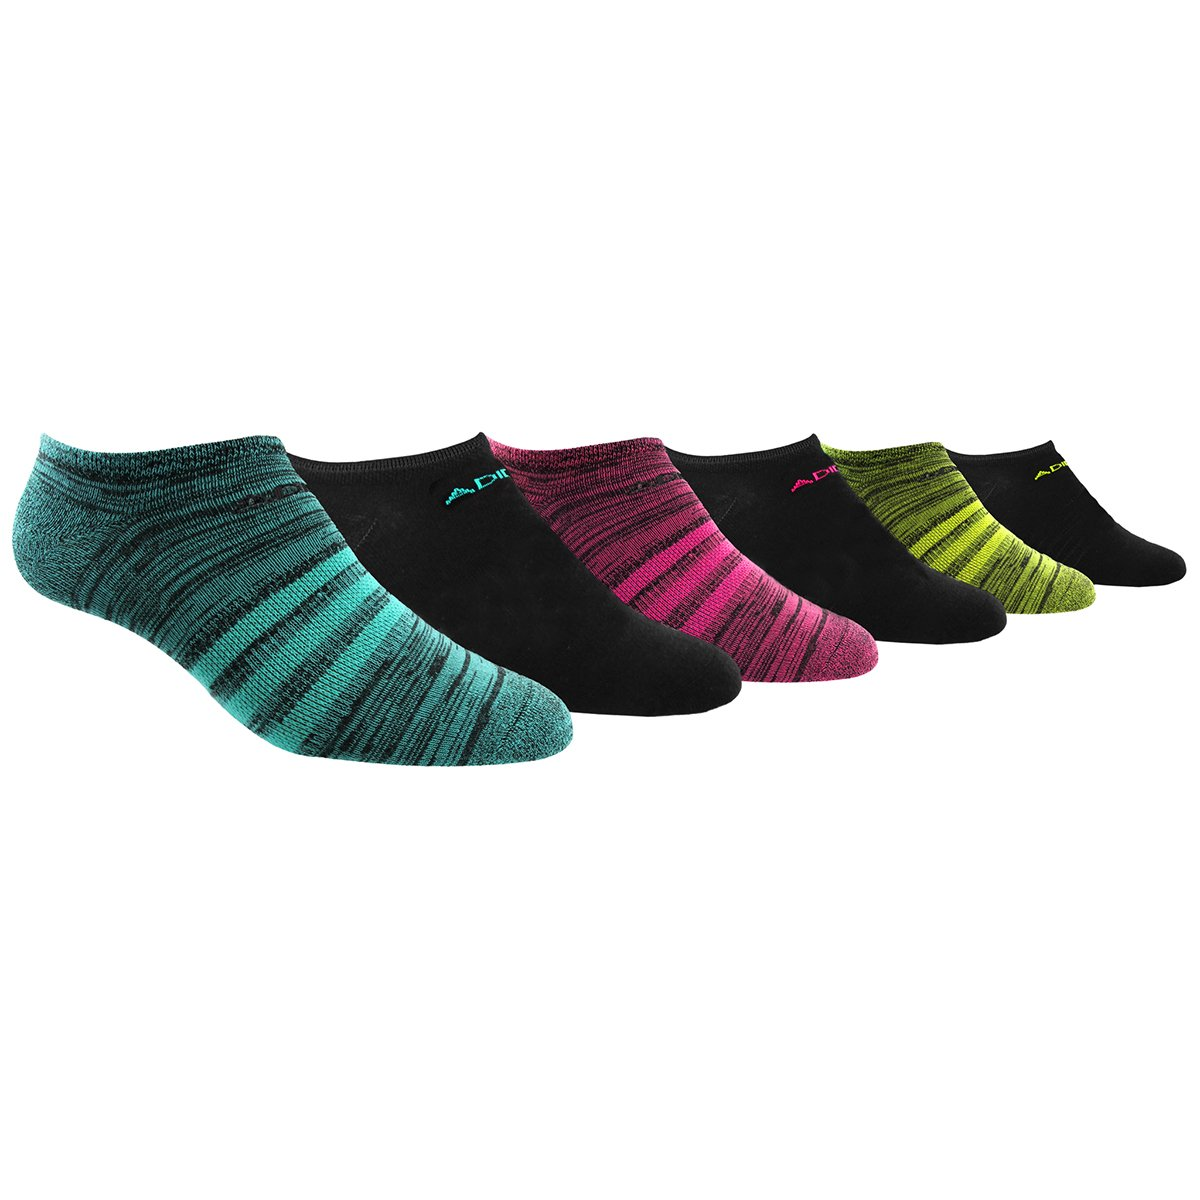 adidas Women's Superlite No Show Socks (6 Pack), Mint Black/Marl/Mint/Pink/Slime Green,Women's Sock size (5-10)